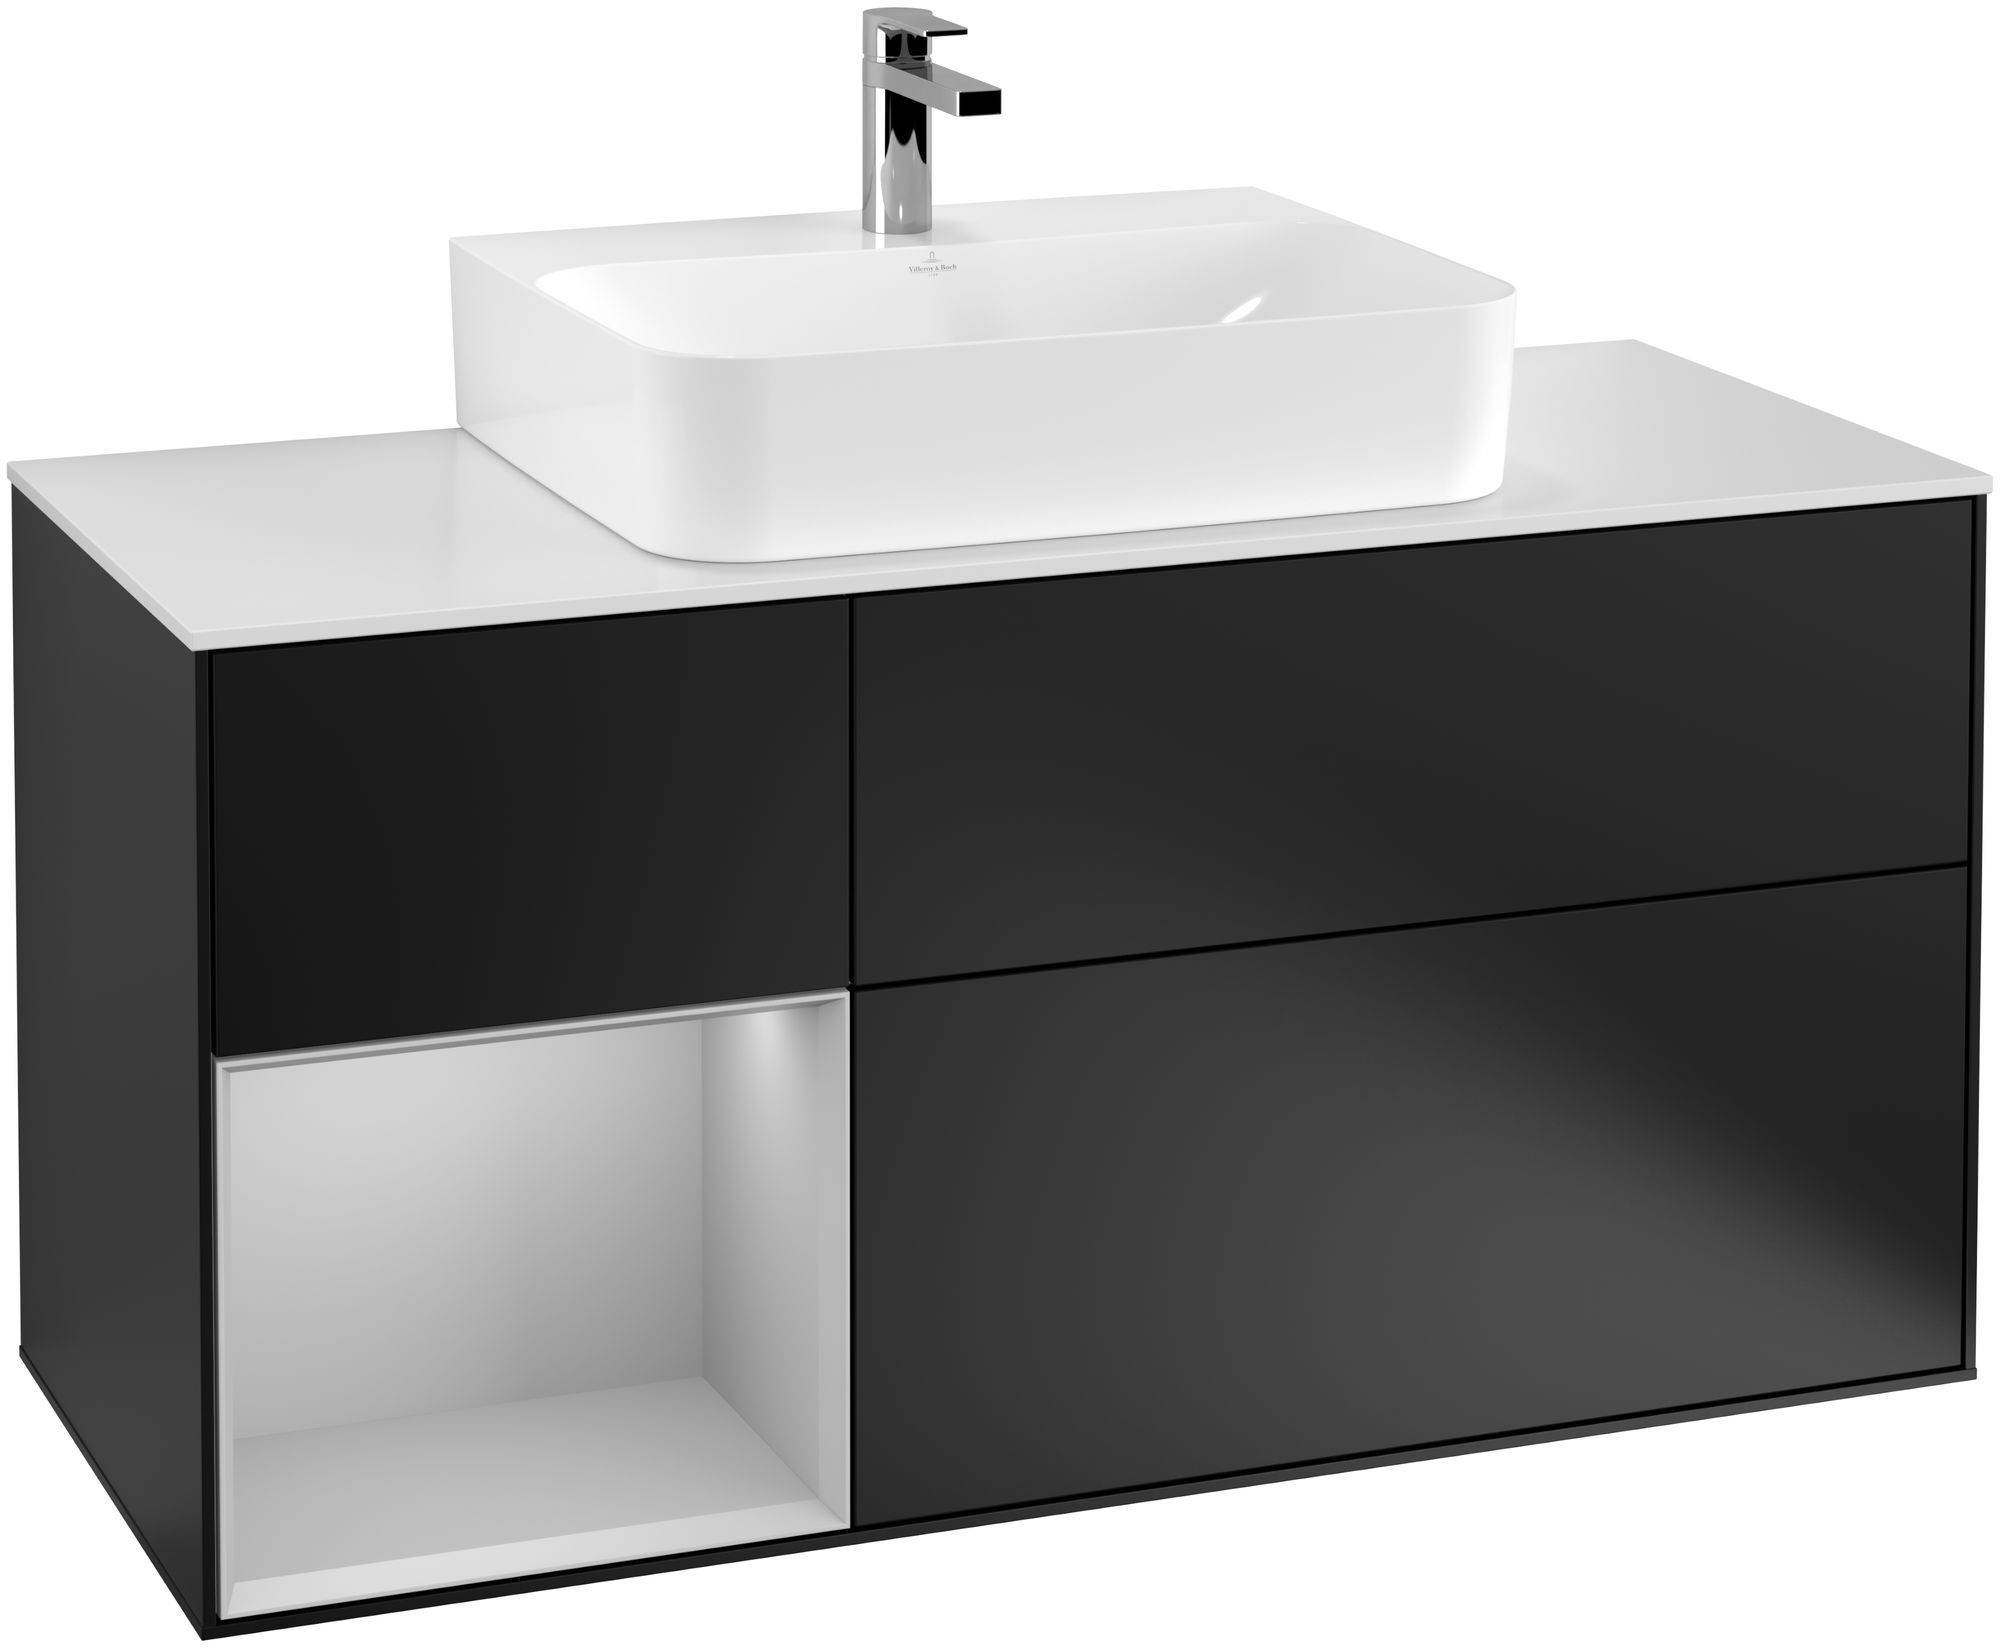 Villeroy & Boch Finion F16 Waschtischunterschrank mit Regalelement 3 Auszüge Waschtisch mittig LED-Beleuchtung B:120xH:60,3xT:50,1cm Front, Korpus: Black Matt Lacquer, Regal: Light Grey Matt, Glasplatte: White Matt F161GJPD